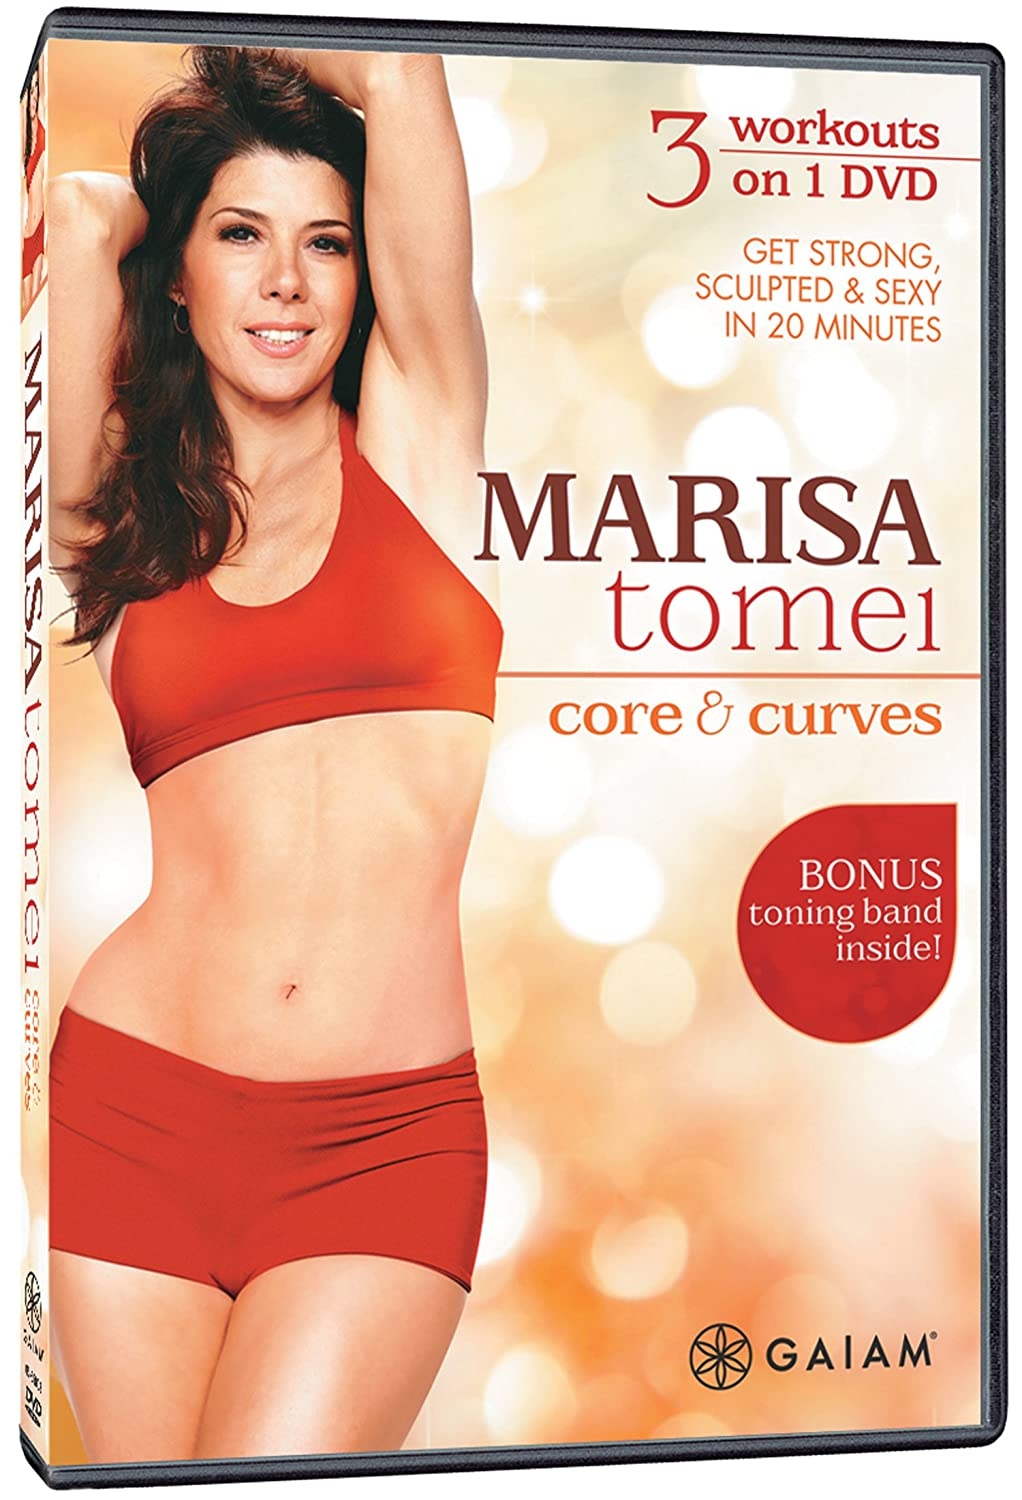 http://www.amazon.com/Marisa-Tomei-Core-Curves/dp/B00308BAYO